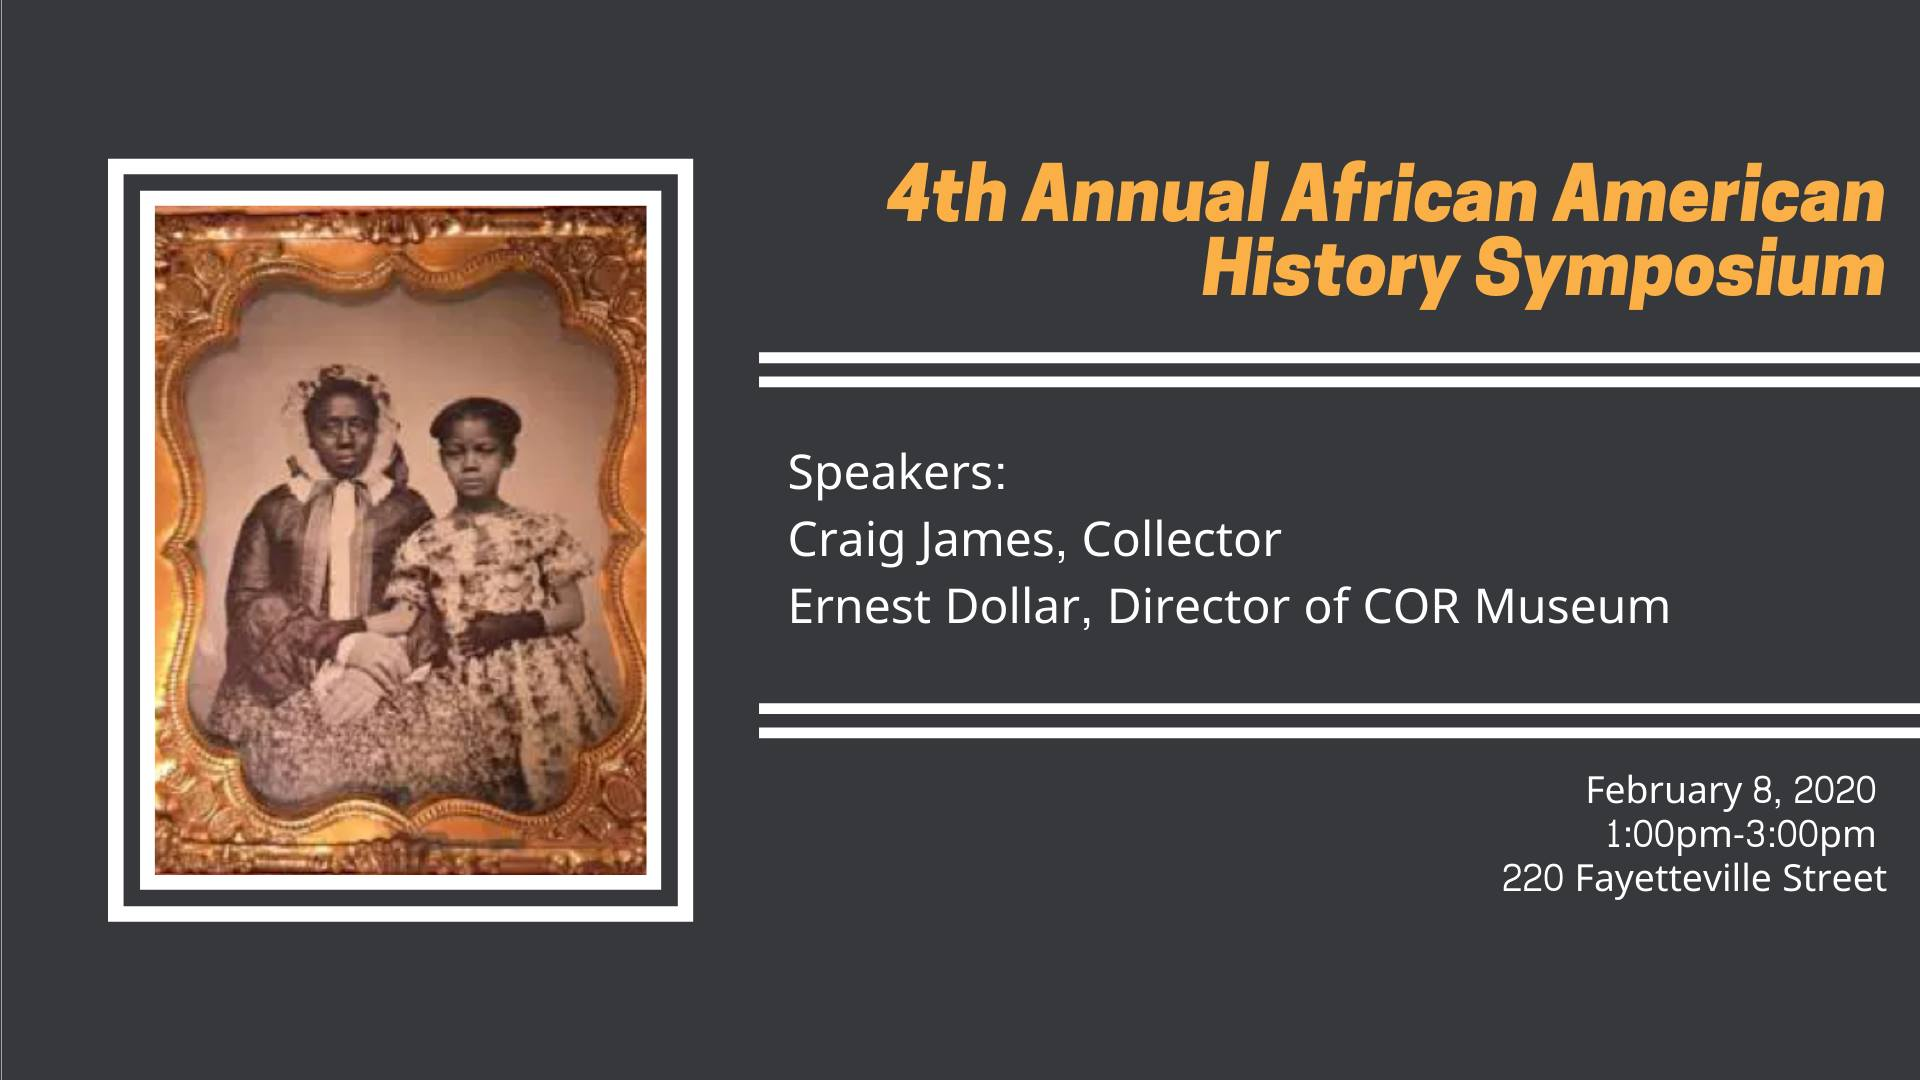 African American Symposium banner including a 19th century photo of two African American women.